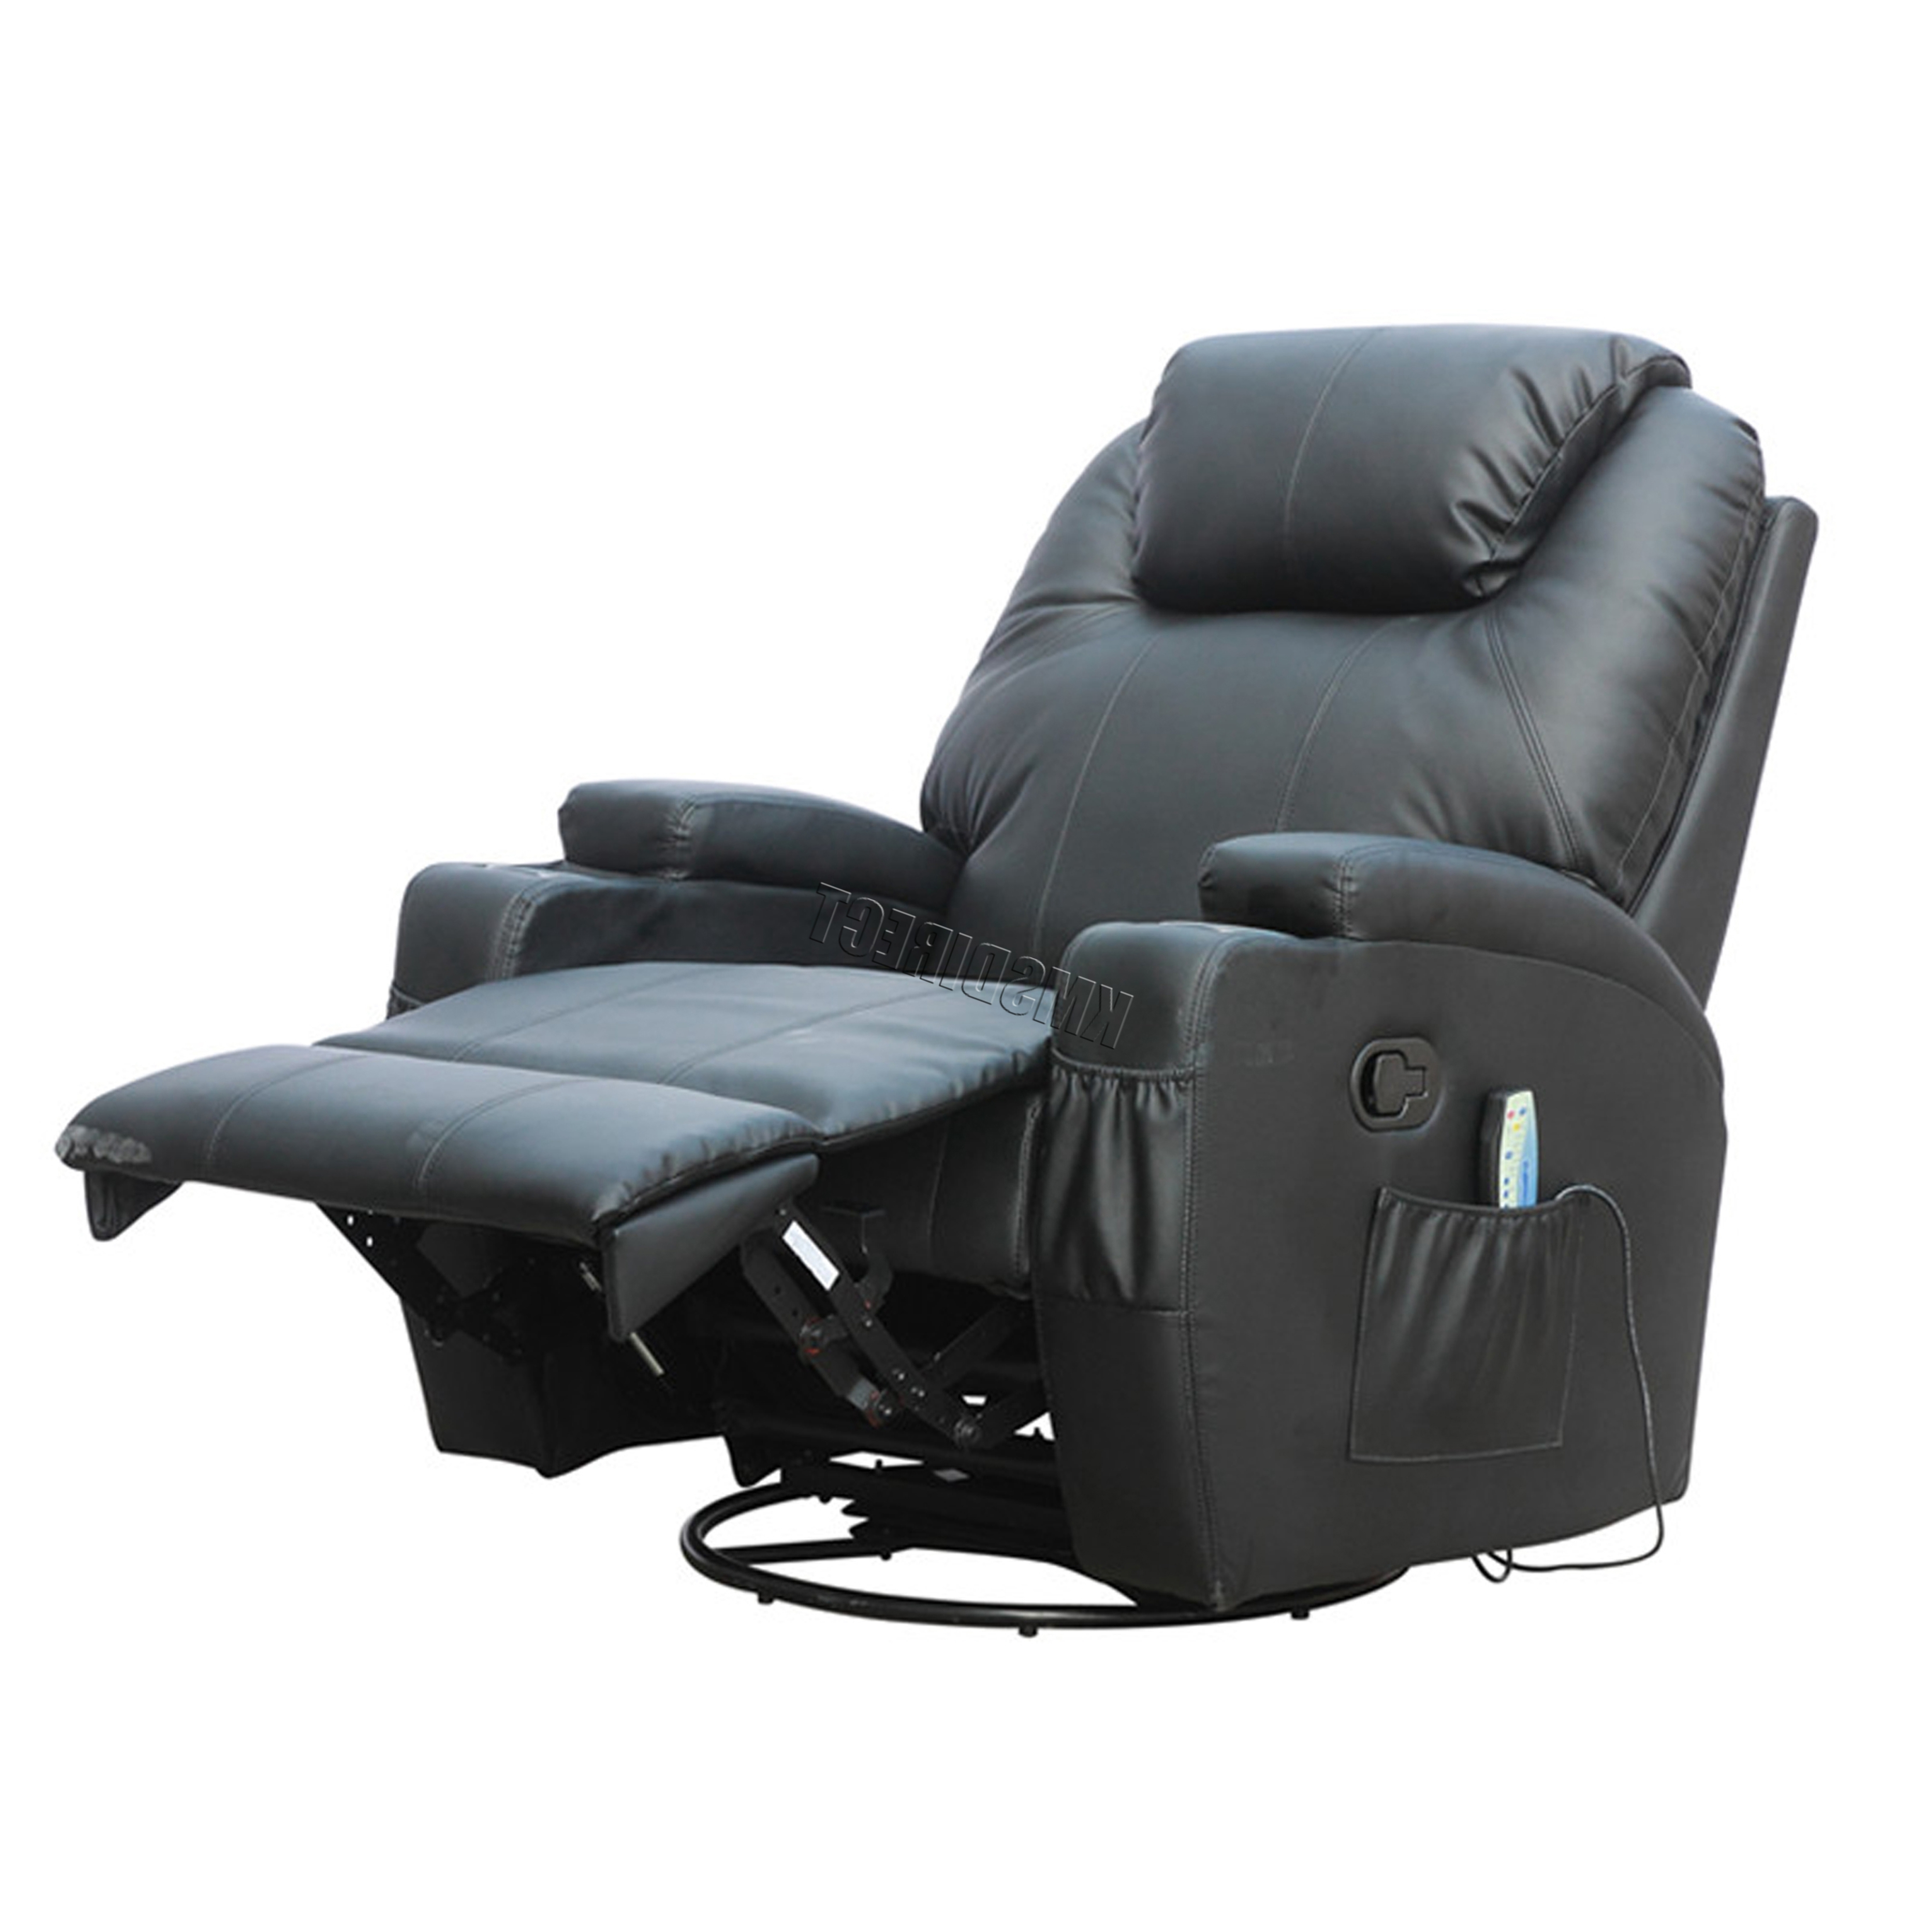 2017 Foxhunter Bonded Leather Sofa Massage Recliner Chair Swivel With Gaming Sofa Chairs (View 8 of 15)